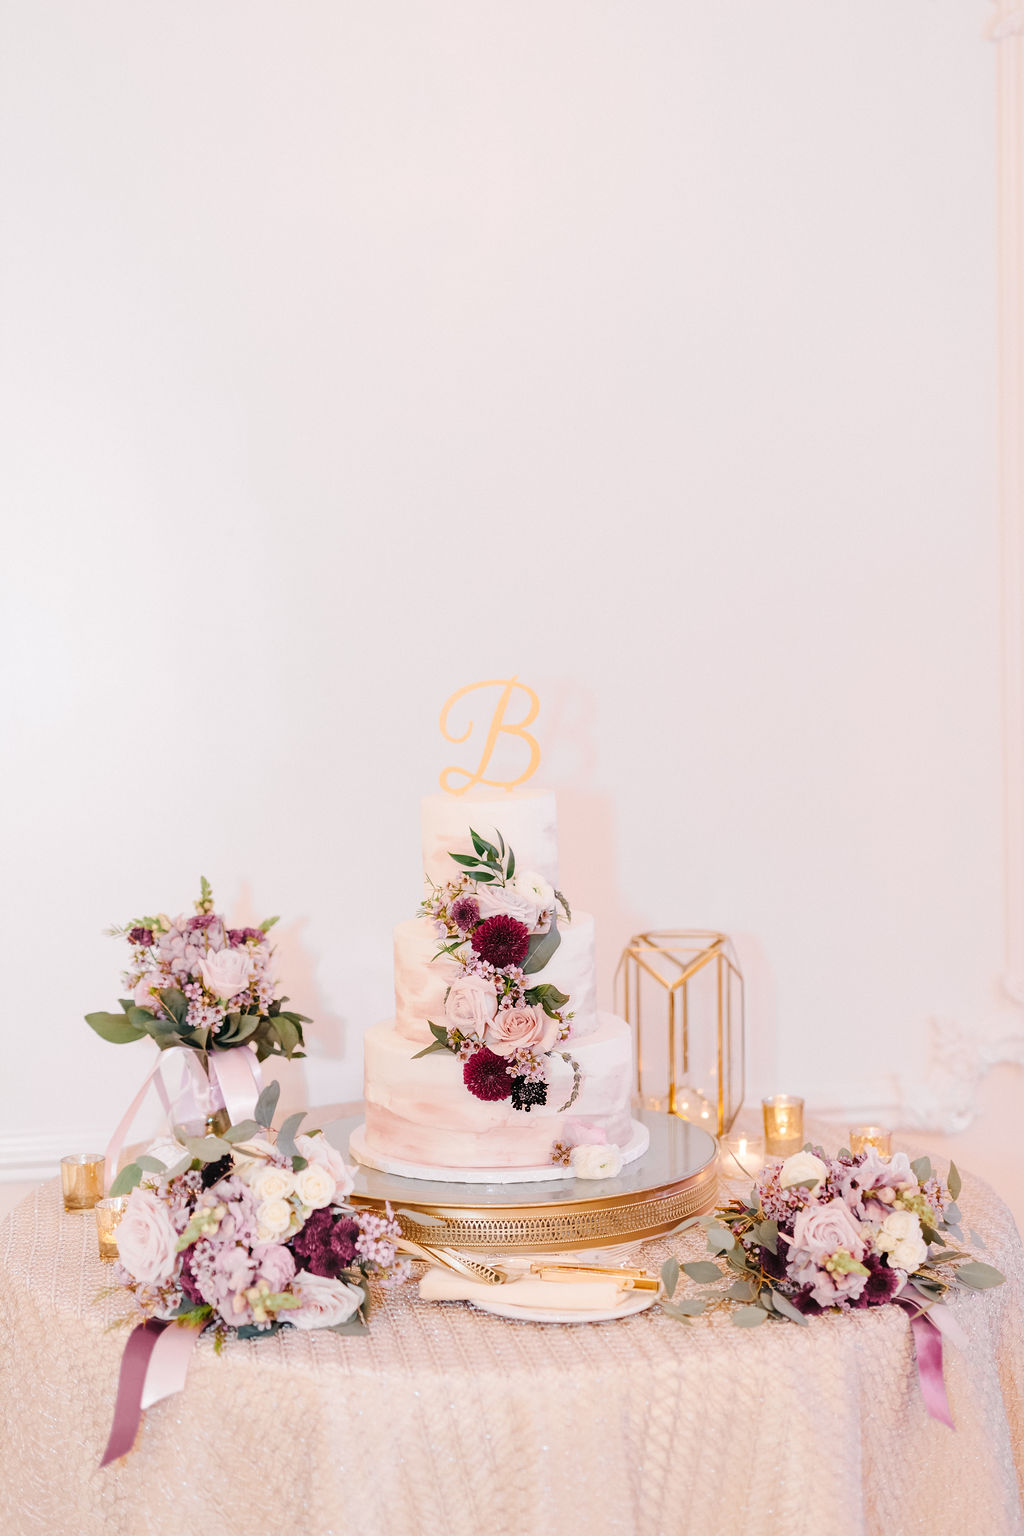 Three Tier Ivory White And Mauve Marble Wedding Cake With